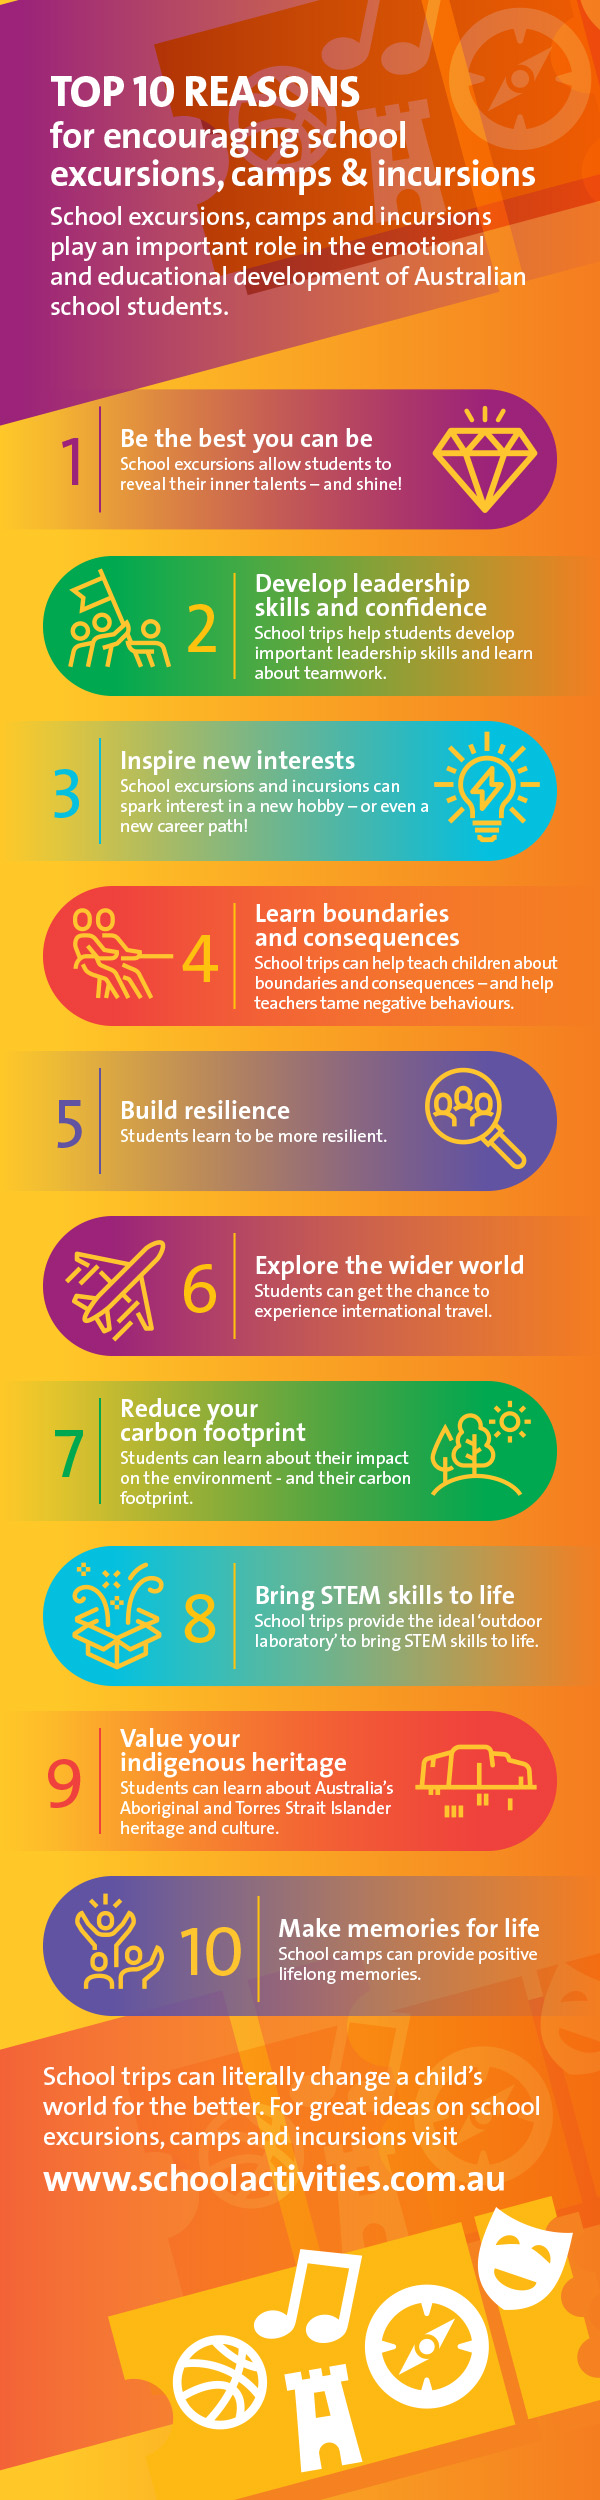 Infographic - Top Ten Reasons for Encouraging School Excursions, Camps and Incursions